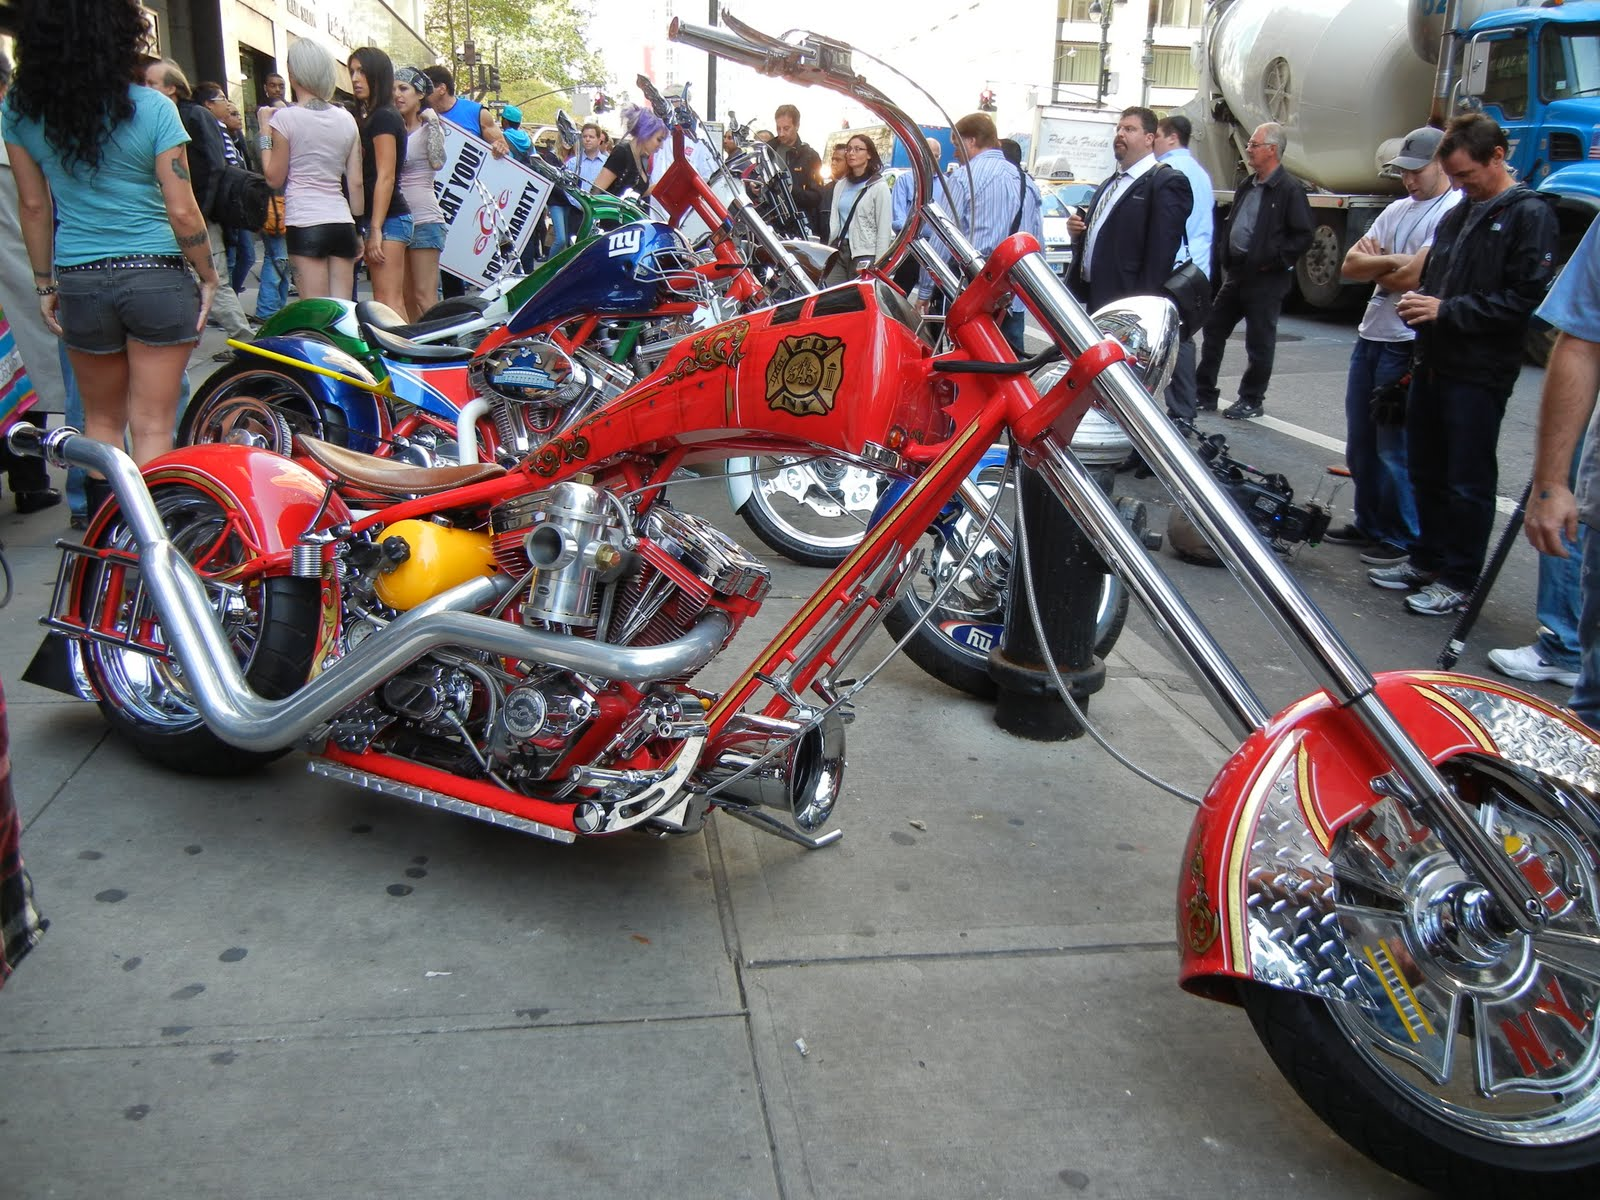 American Chopper Bike - Page 4 American%2BChoppers%2BFire%2BBike%2BPremiere%2BCouture